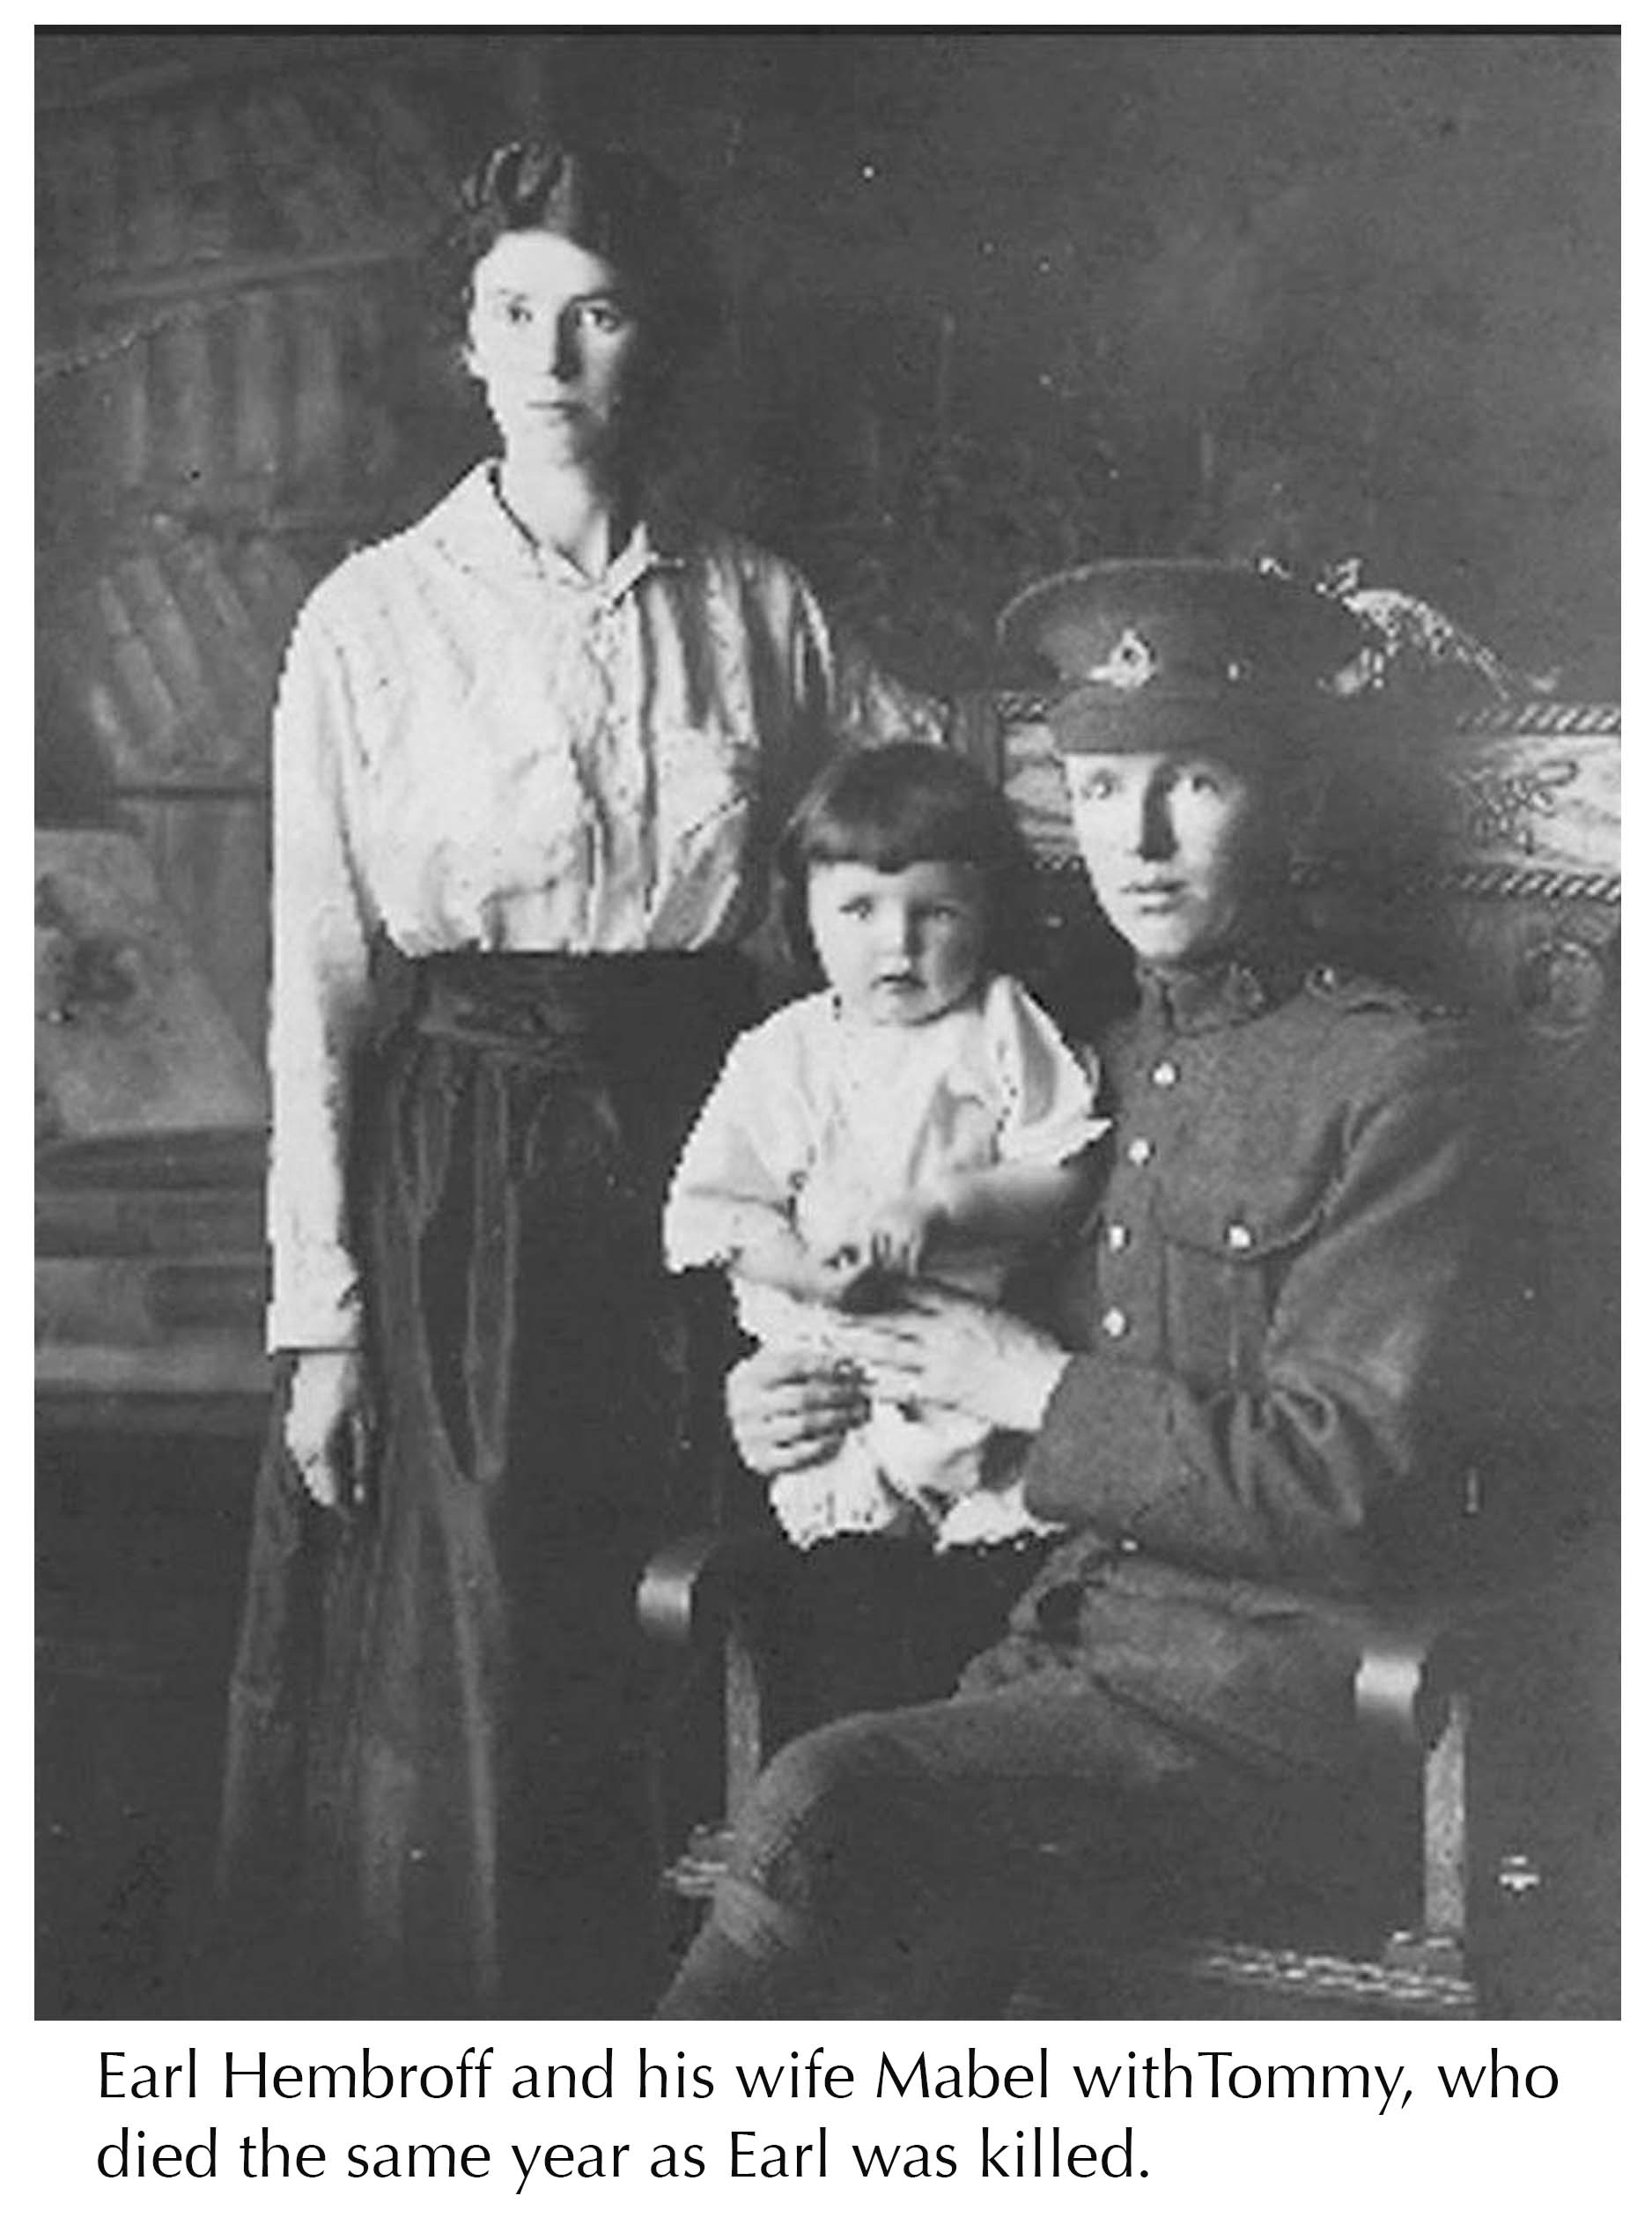 Family Photo– Earl Hembroff with his wife, Mabel and son Tommy, who died the same year that Earl was killed.